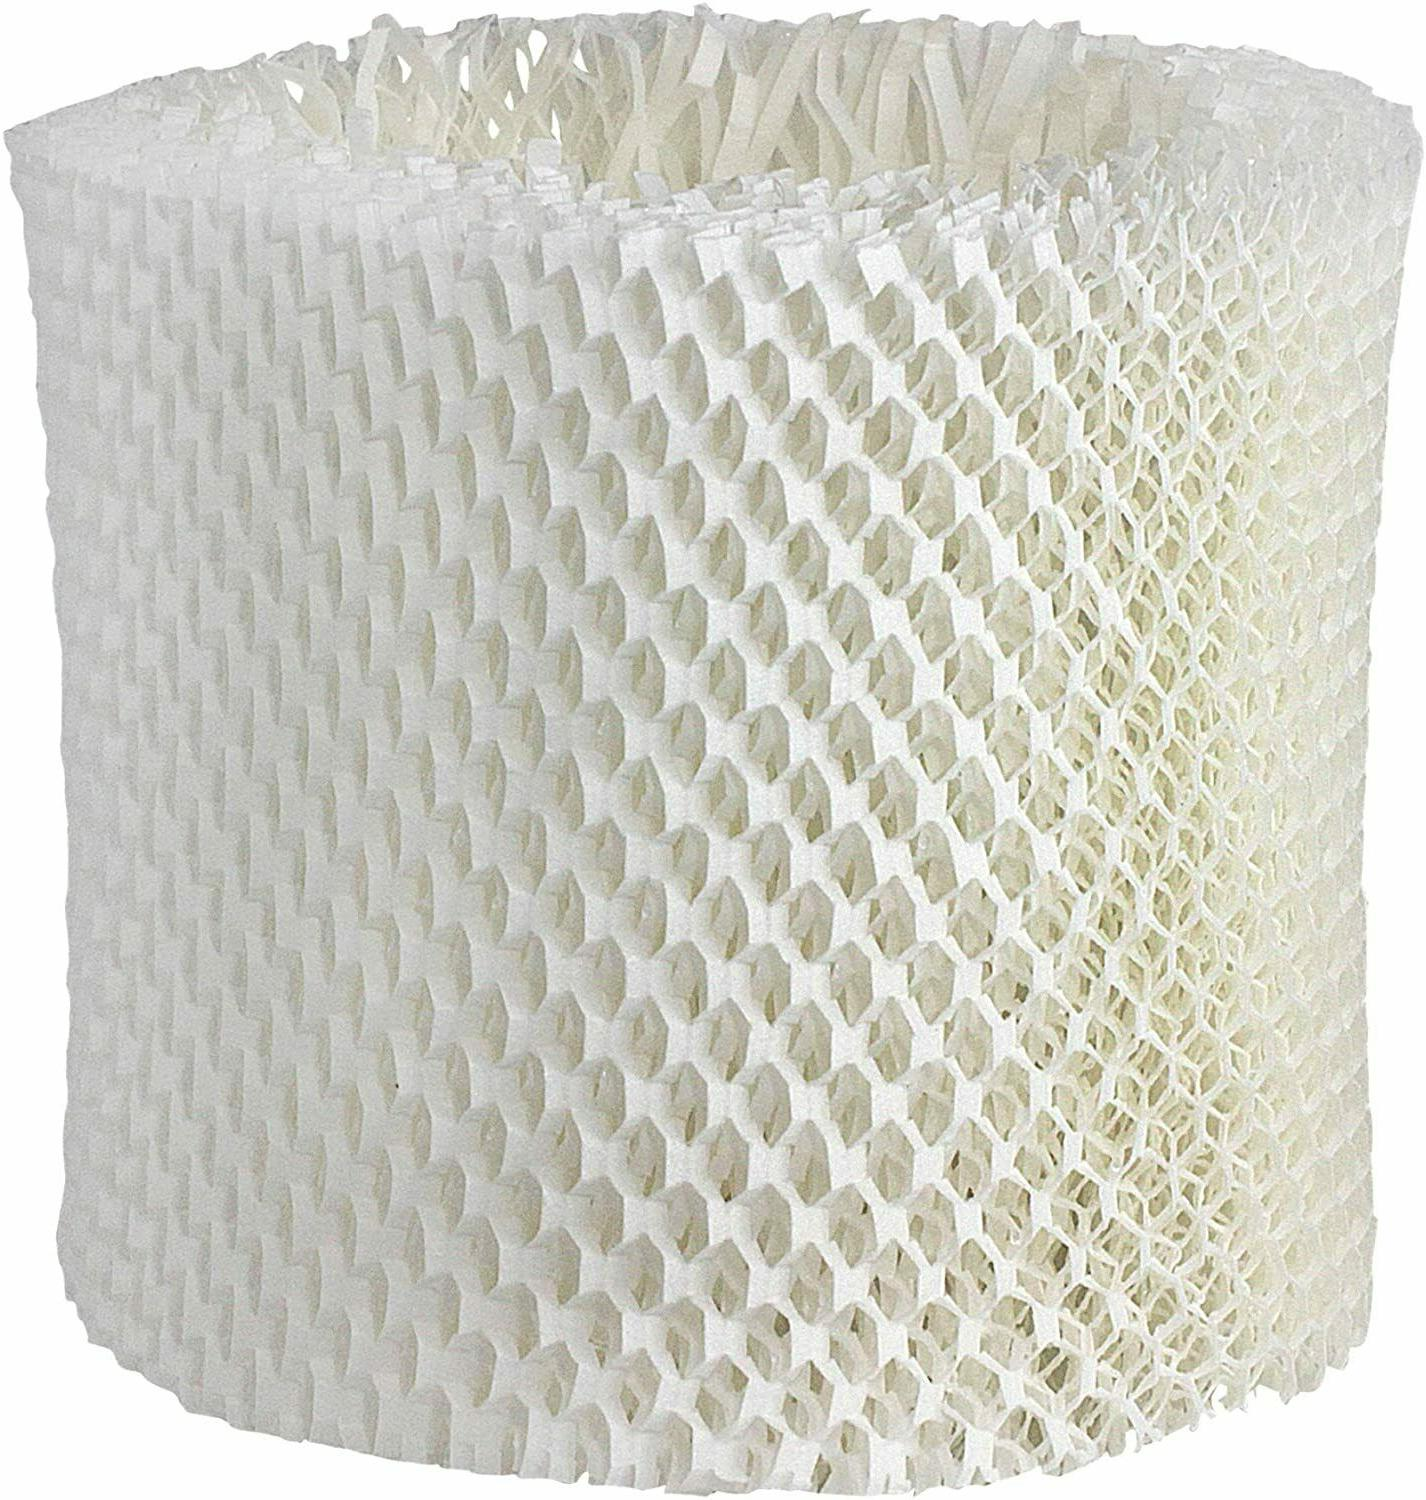 FilterBuy Replacement Humidifier Filters with WF2 Kaz Vicks